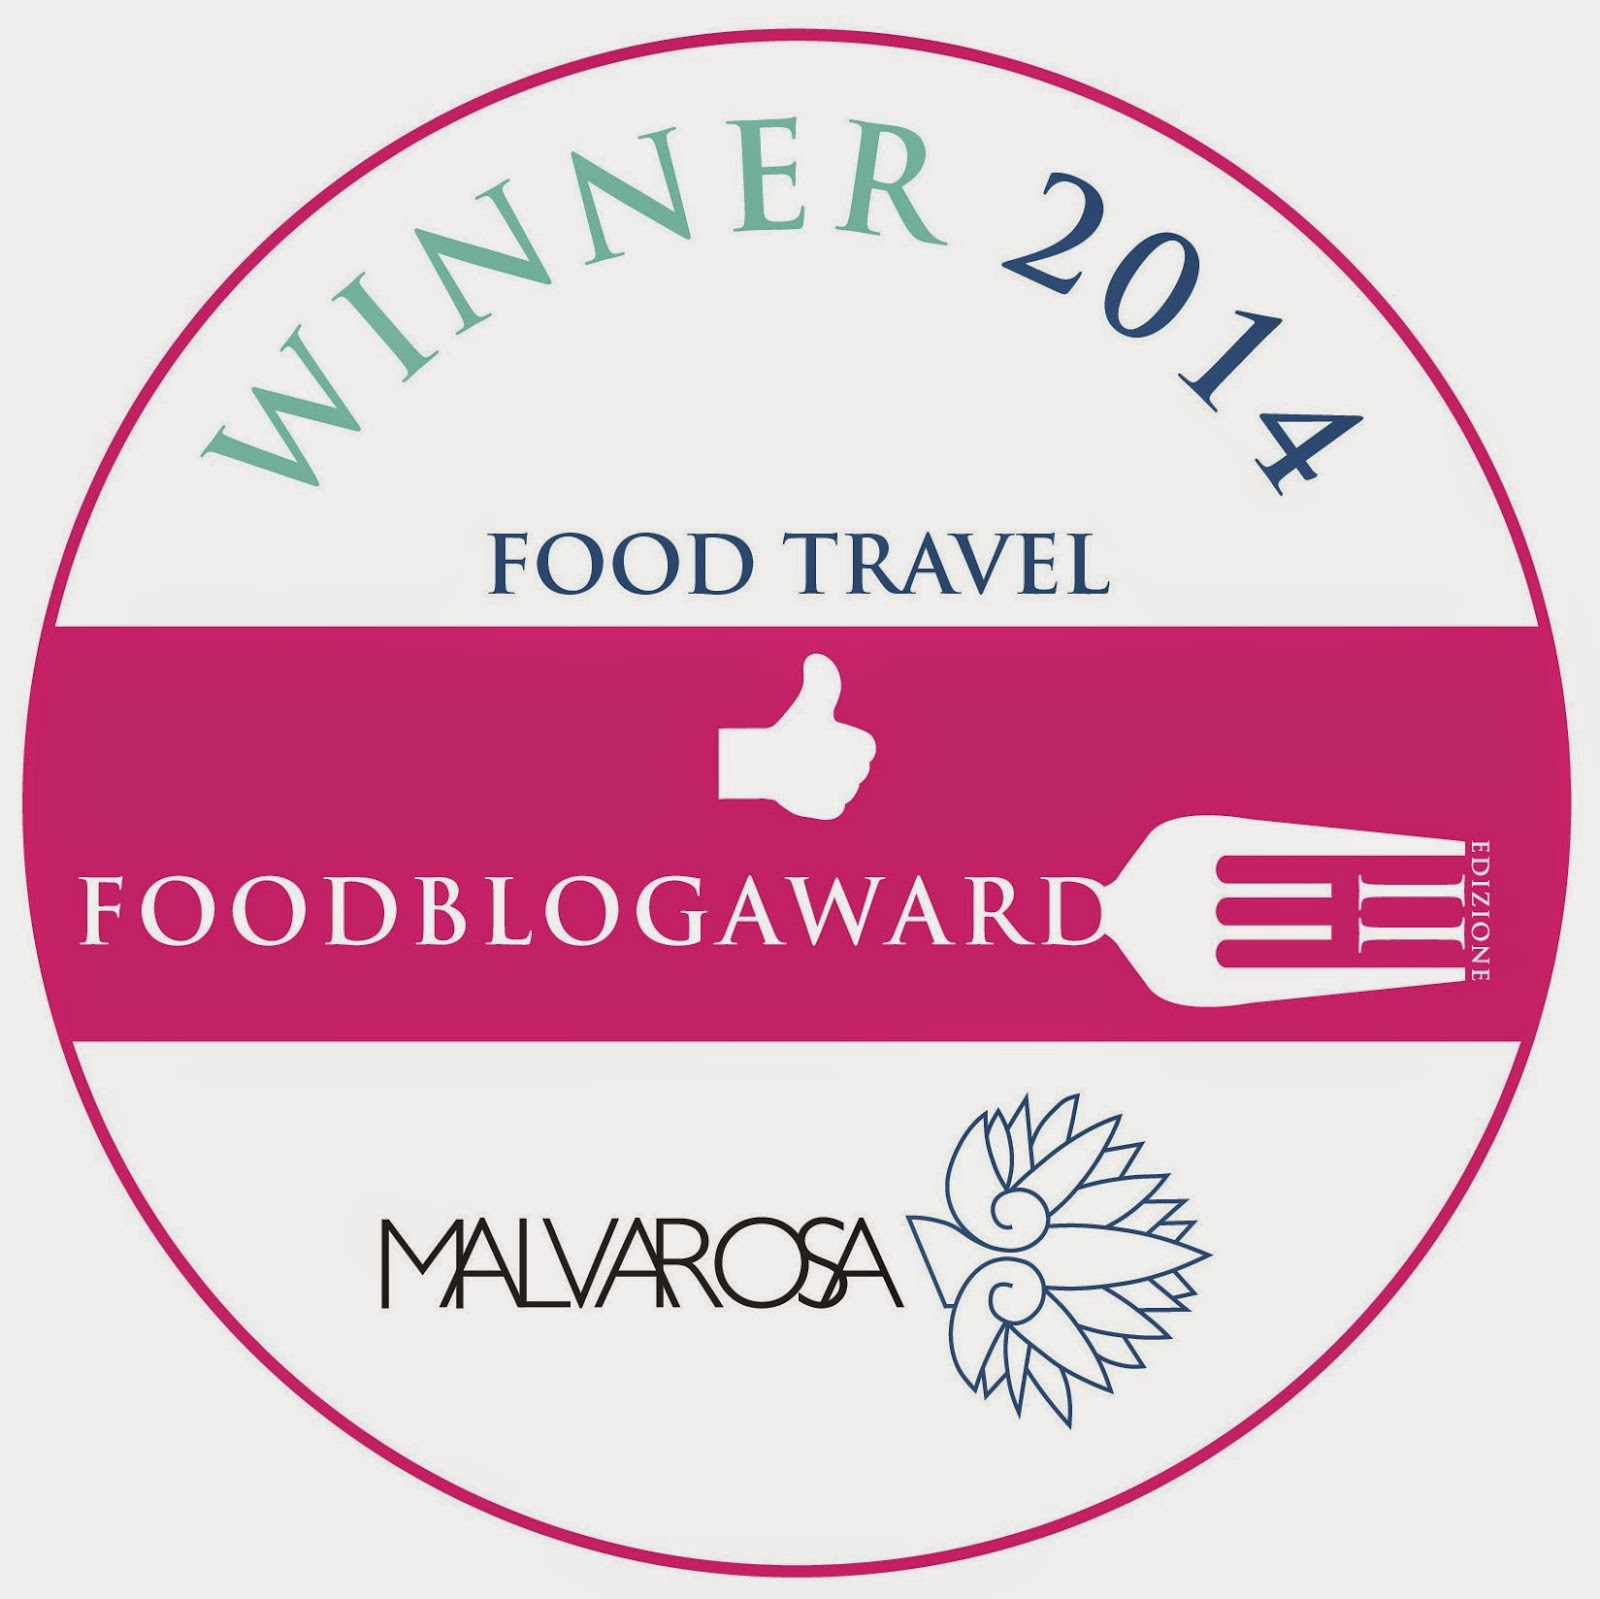 FOOD WINE & CULTURE – Miglior Food & Travel Blog Votato dalla Rete per FOOD BLOG AWARDS 2014